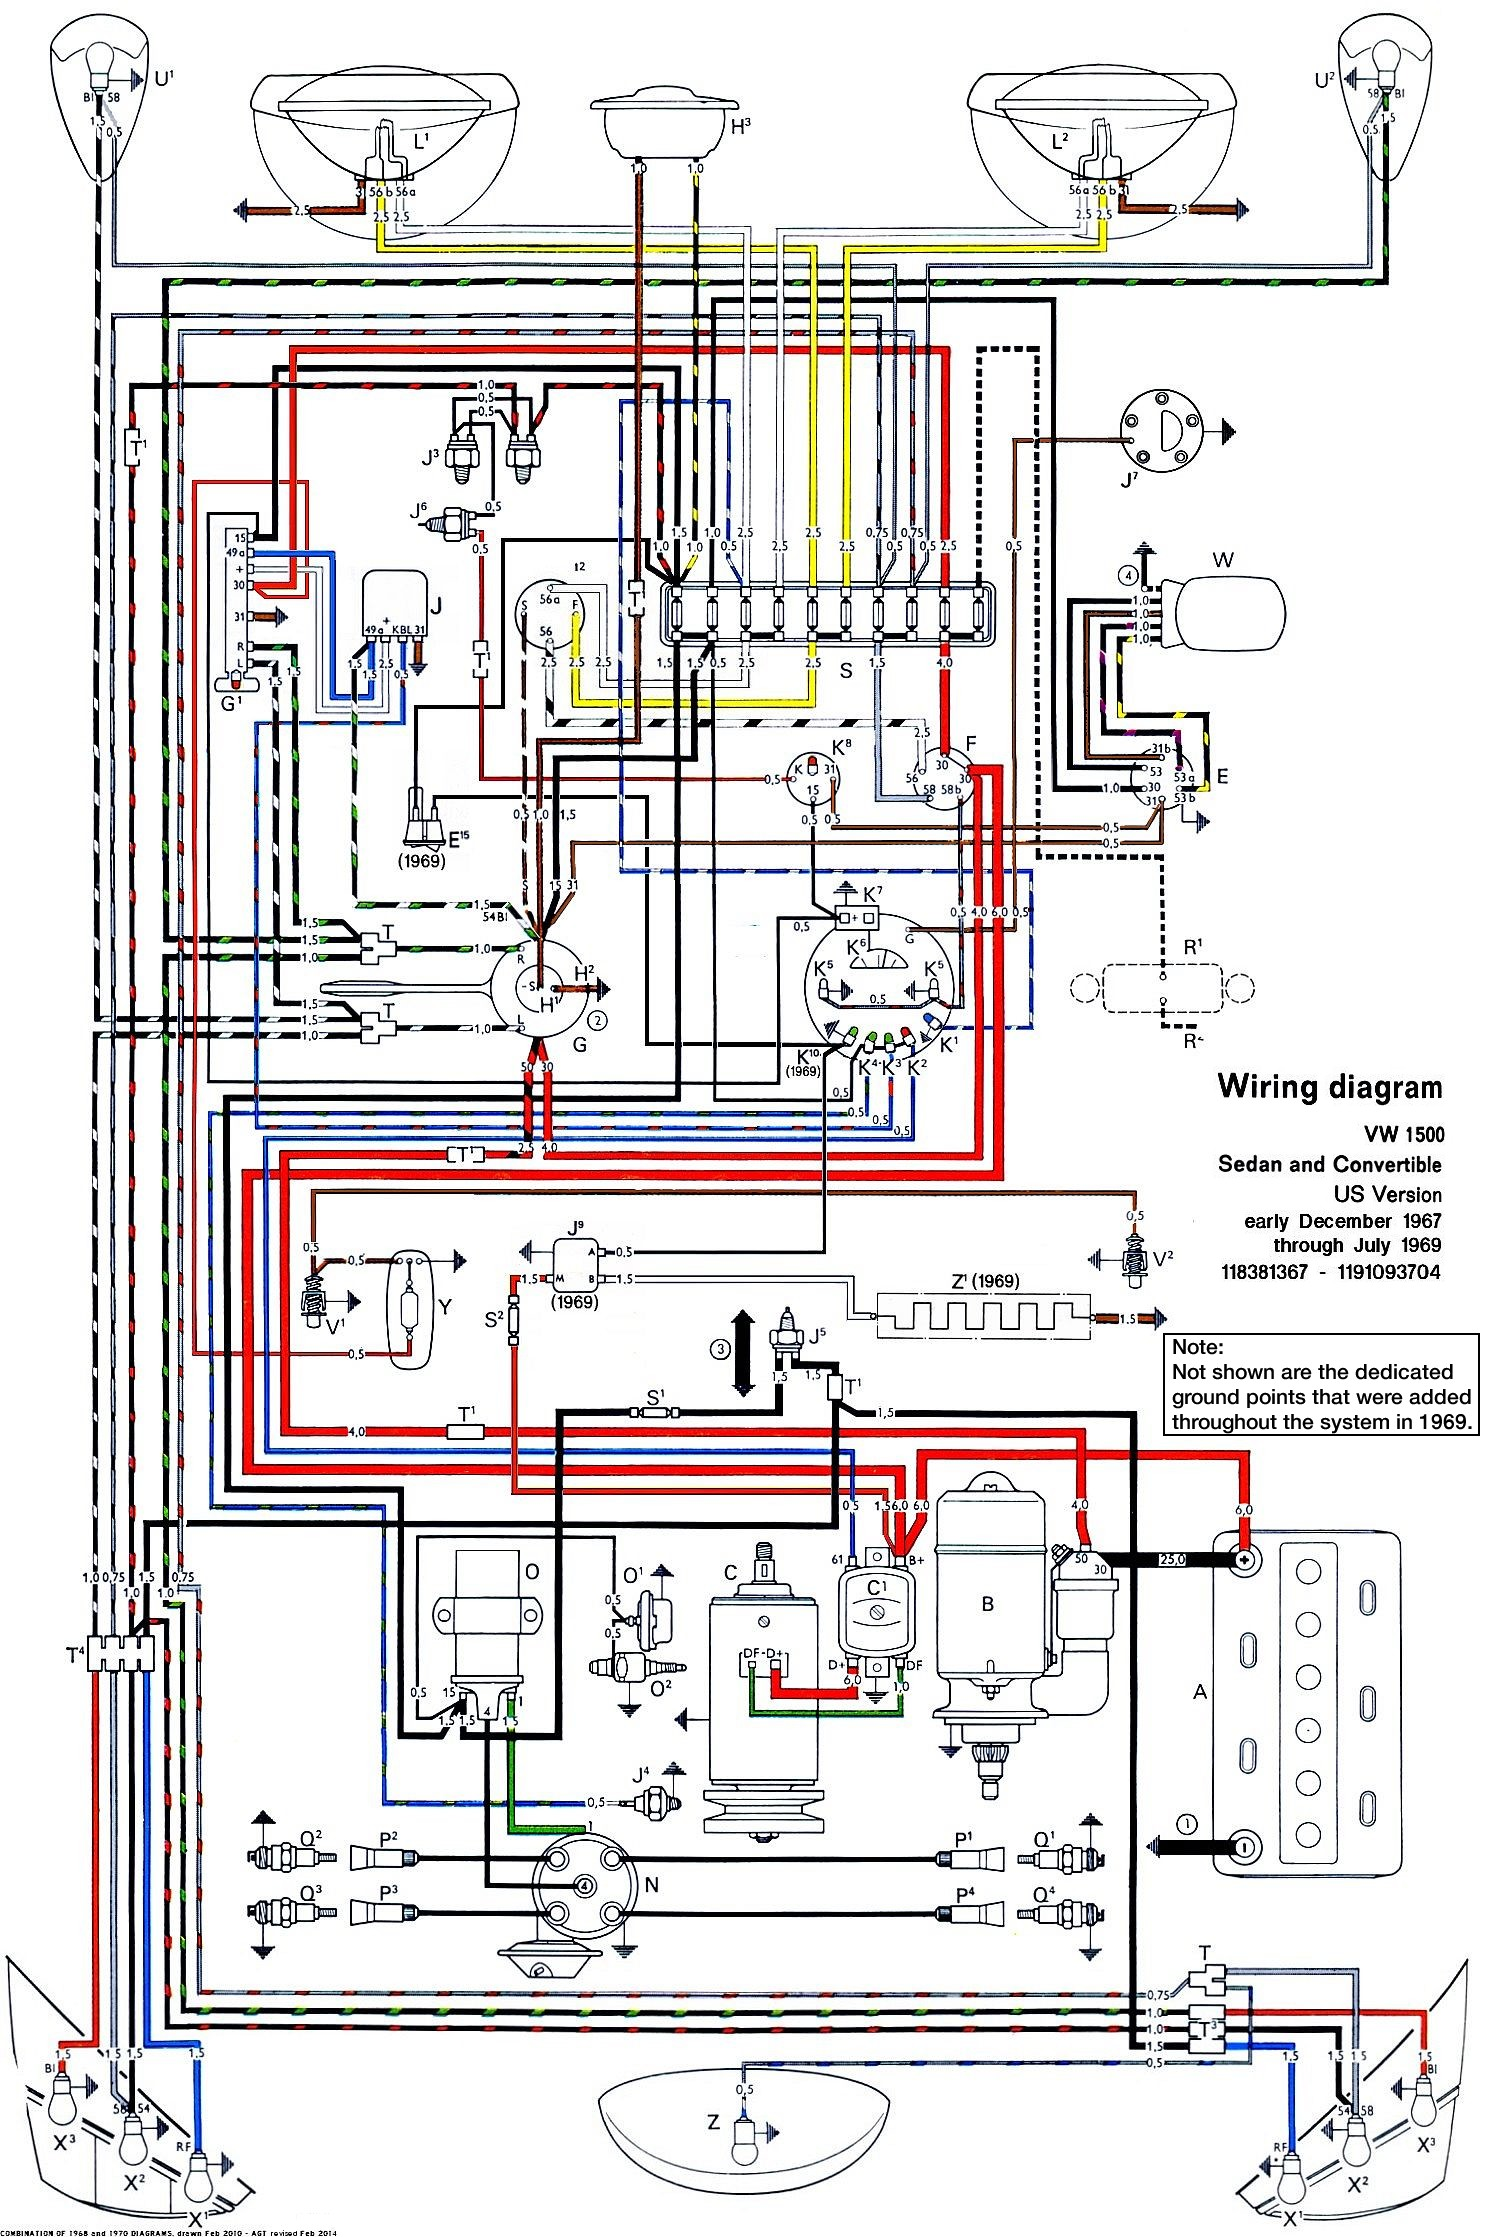 1971 Vw Bug Ignition Coil Wiring Diagram Library. 1963 Type 1 Wiring Diagram Get Free About Vw Alternator Bug. Wiring. Ignition Coil Wiring Diagram 1968 At Scoala.co